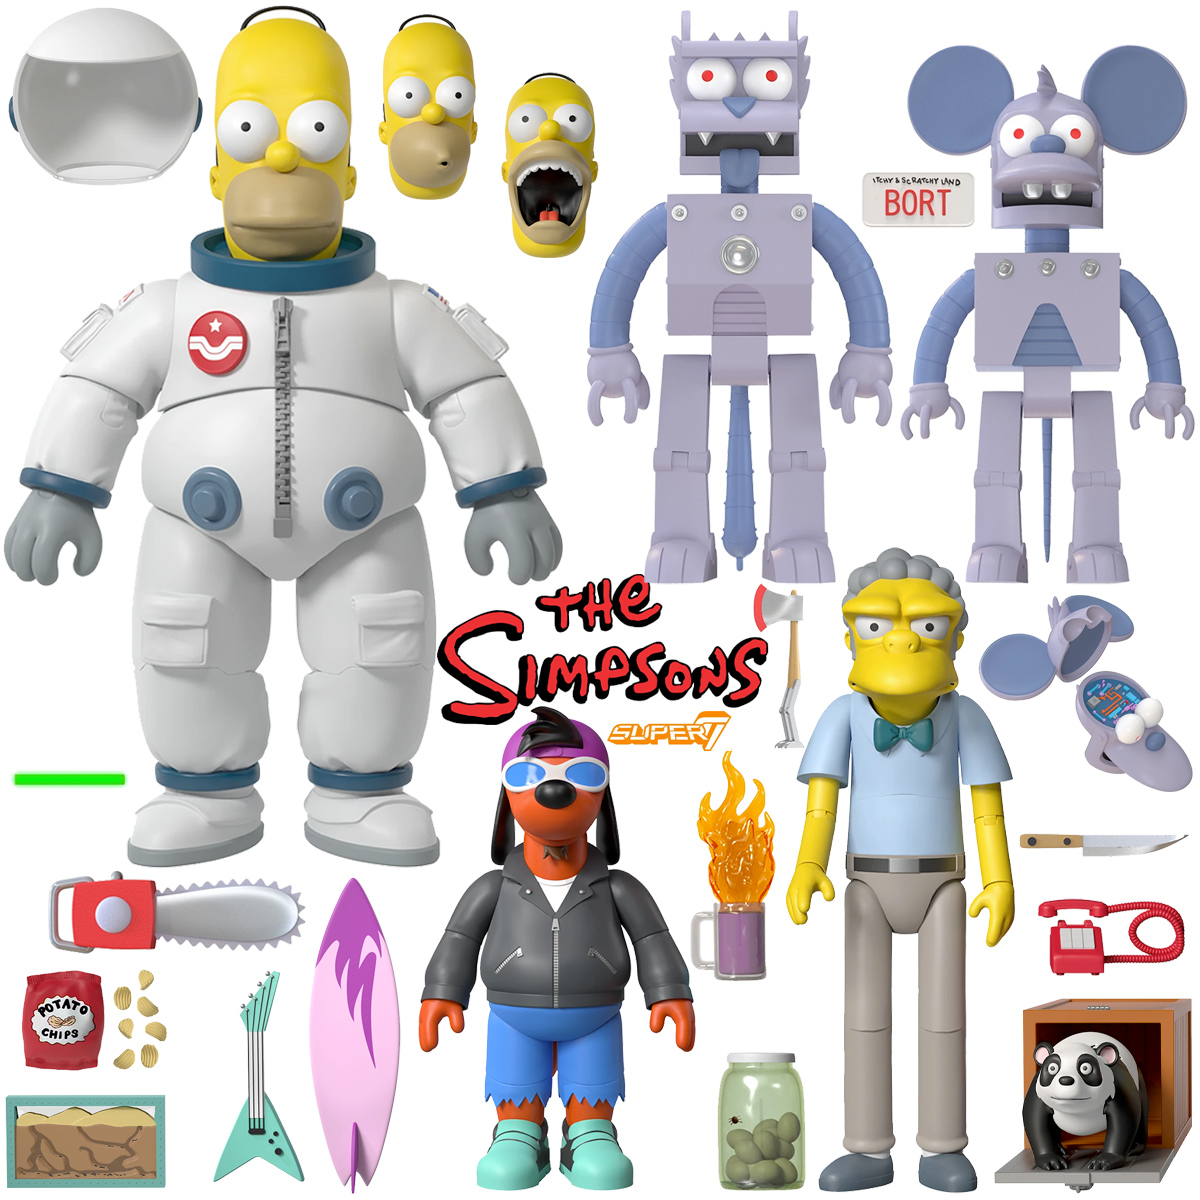 Os Simpsons Action Figures Super7 Ultimates: Deep Space Homer, Moe, Poochie, Robots Itchy & Scratchy